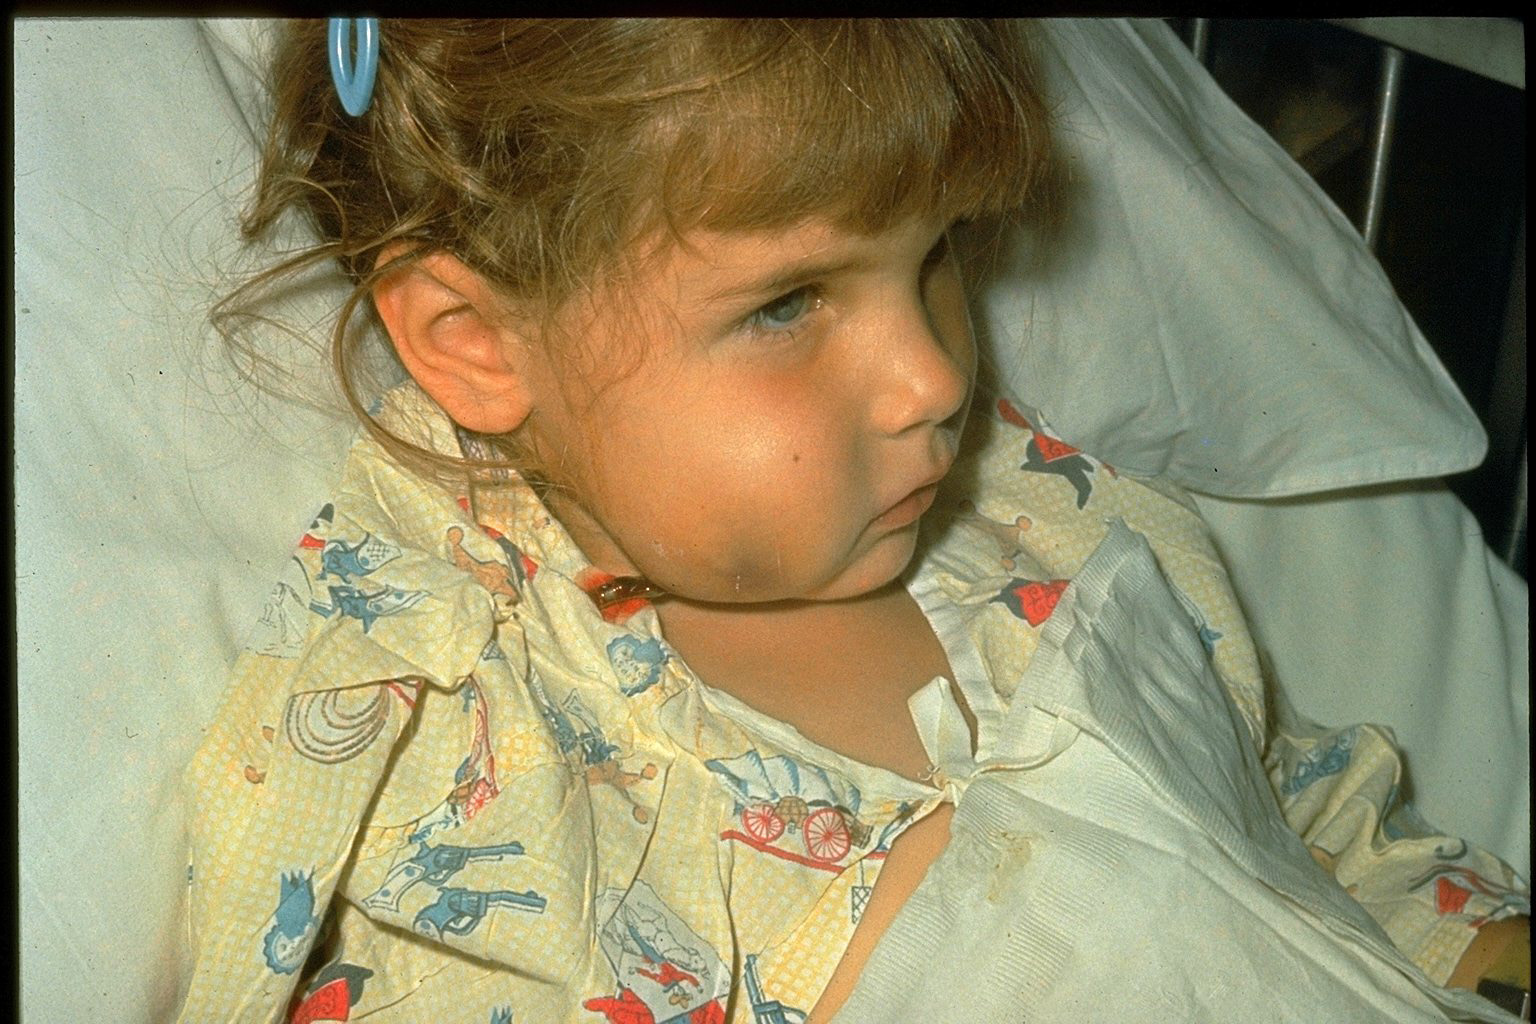 A child who's been infected with Hib